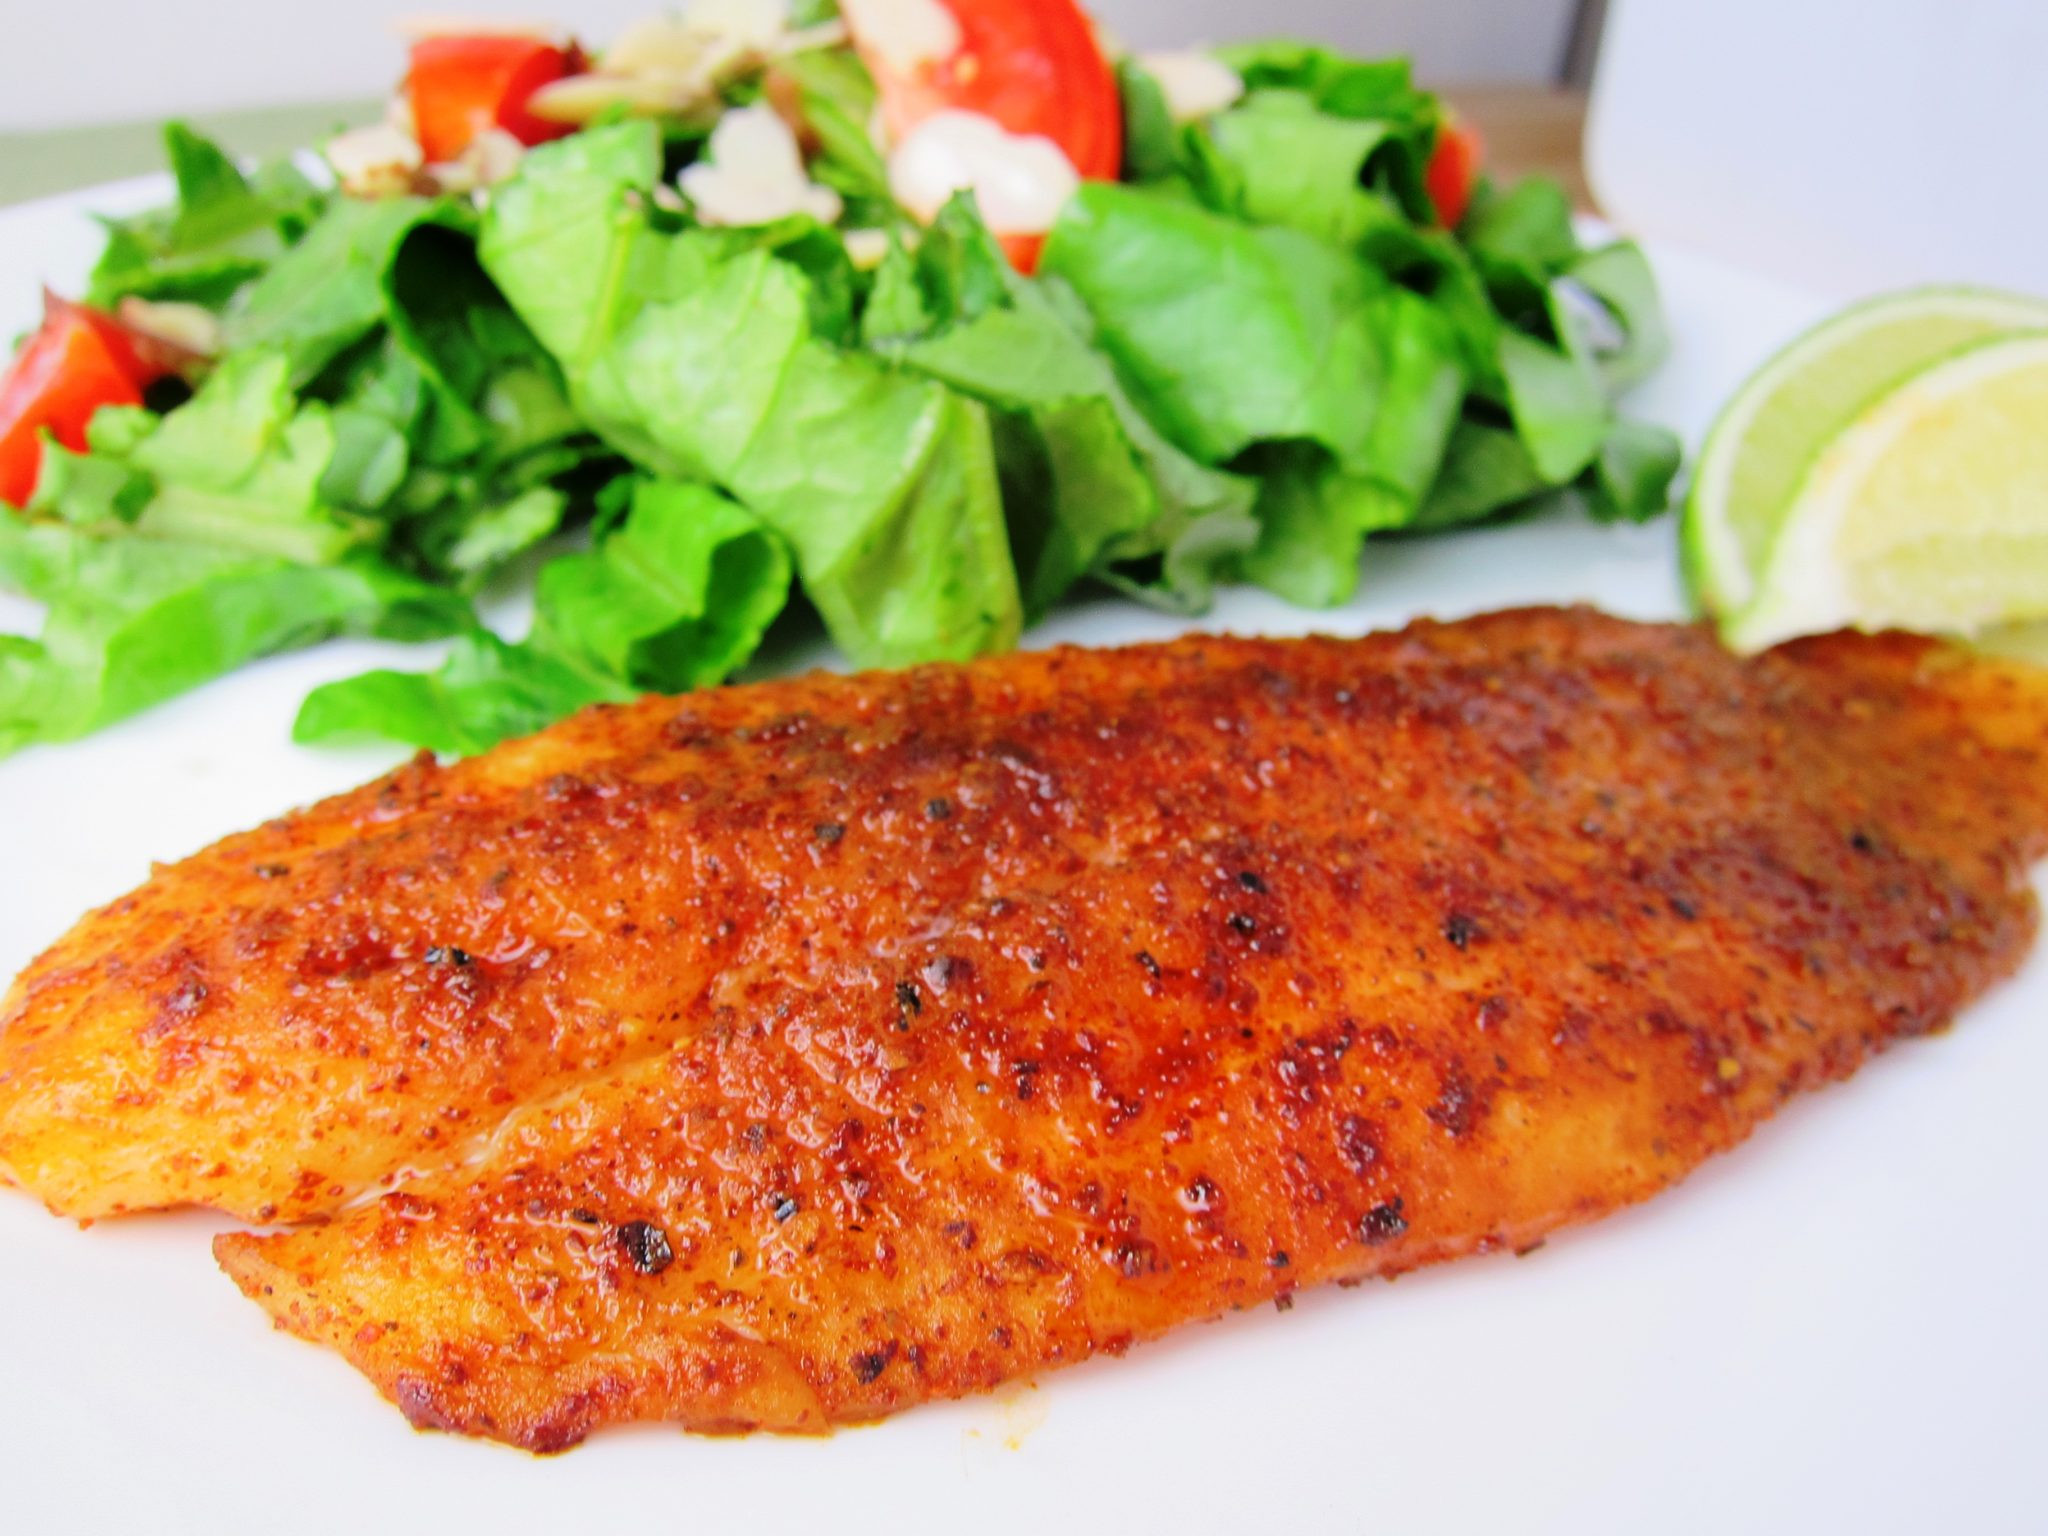 Healthy Swai Fish Recipes  10 Minute Chili Lime Swai Fillets